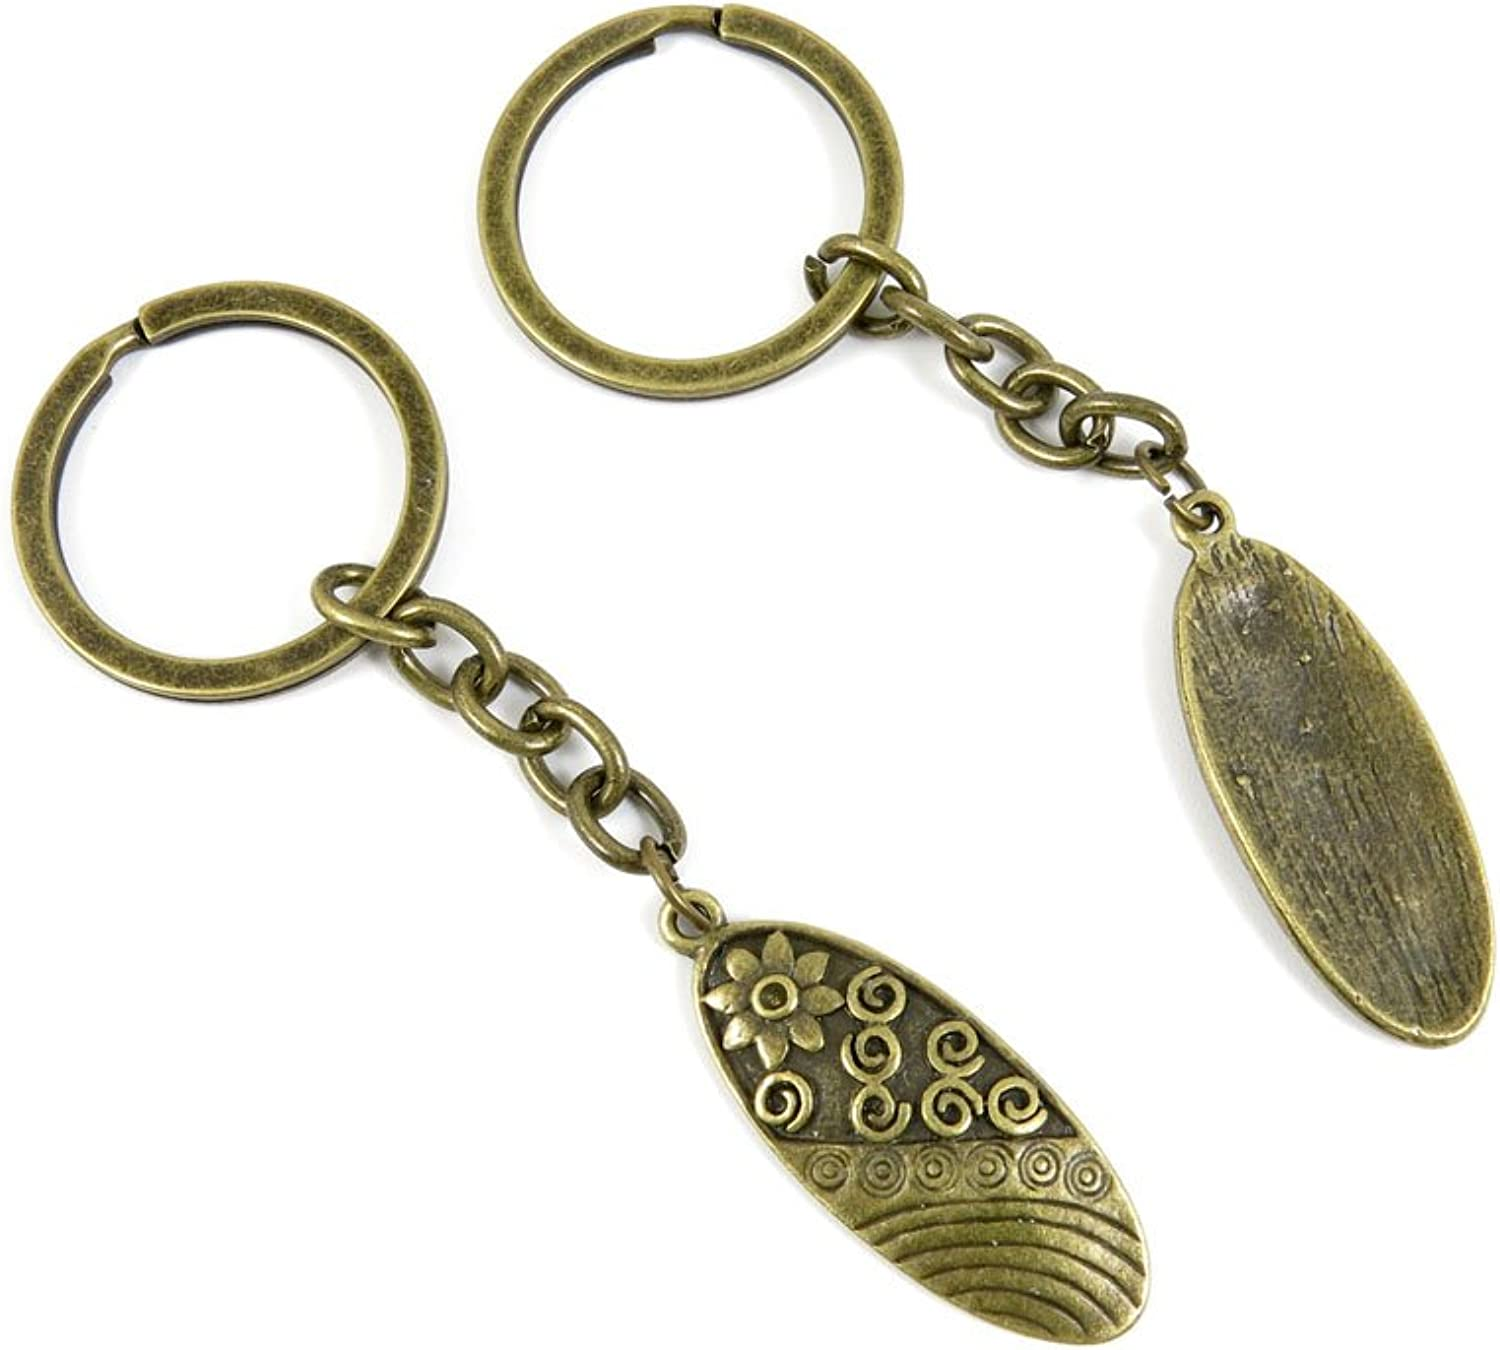 80 PCS Keyring Car Door Key Ring Tag Chain Keychain Wholesale Suppliers Charms Handmade K3DH9 Flower Signs